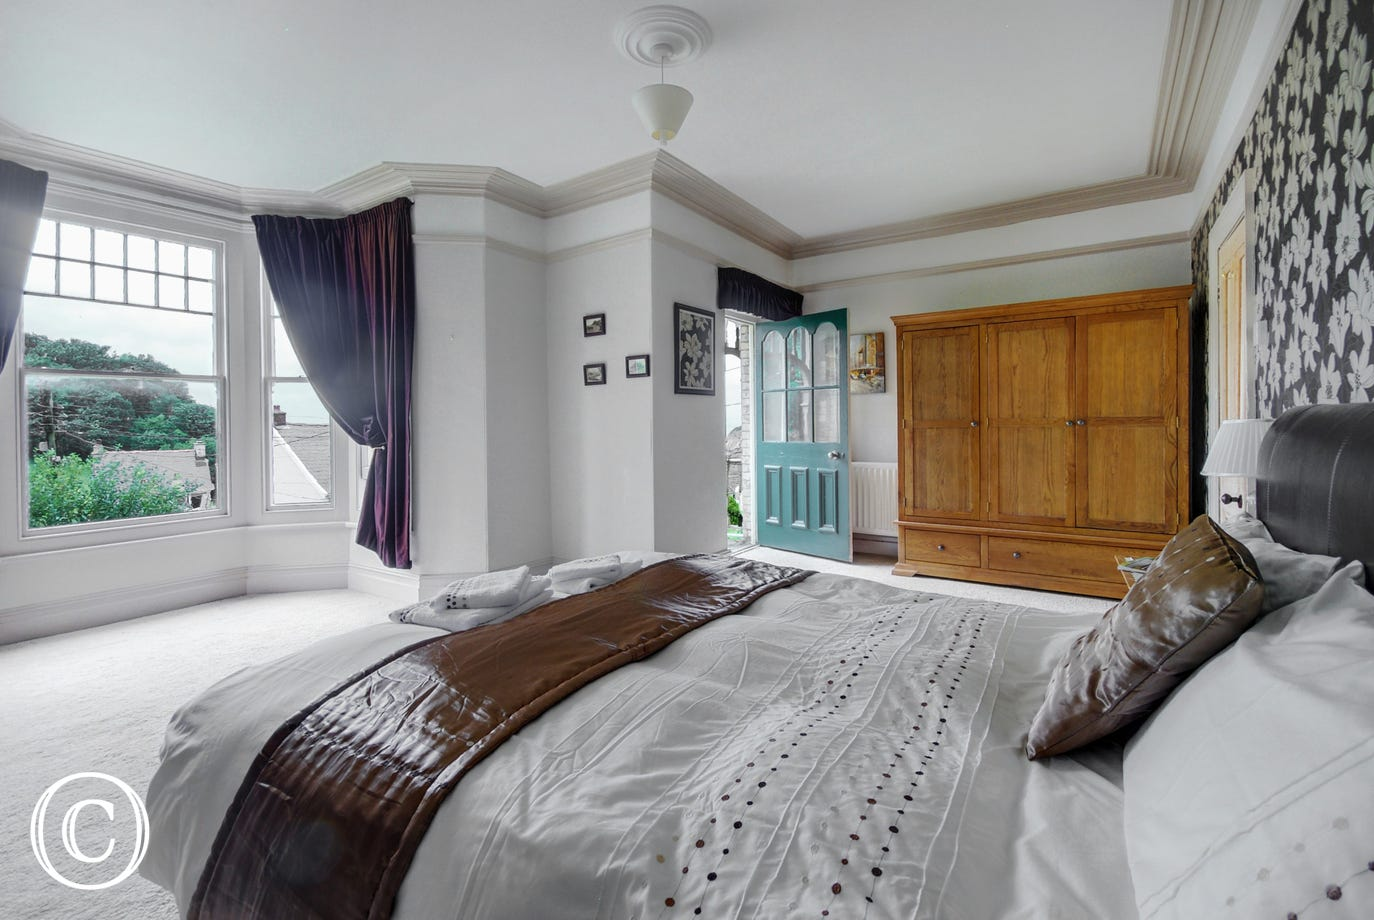 Large double bedroom with access to a balcony